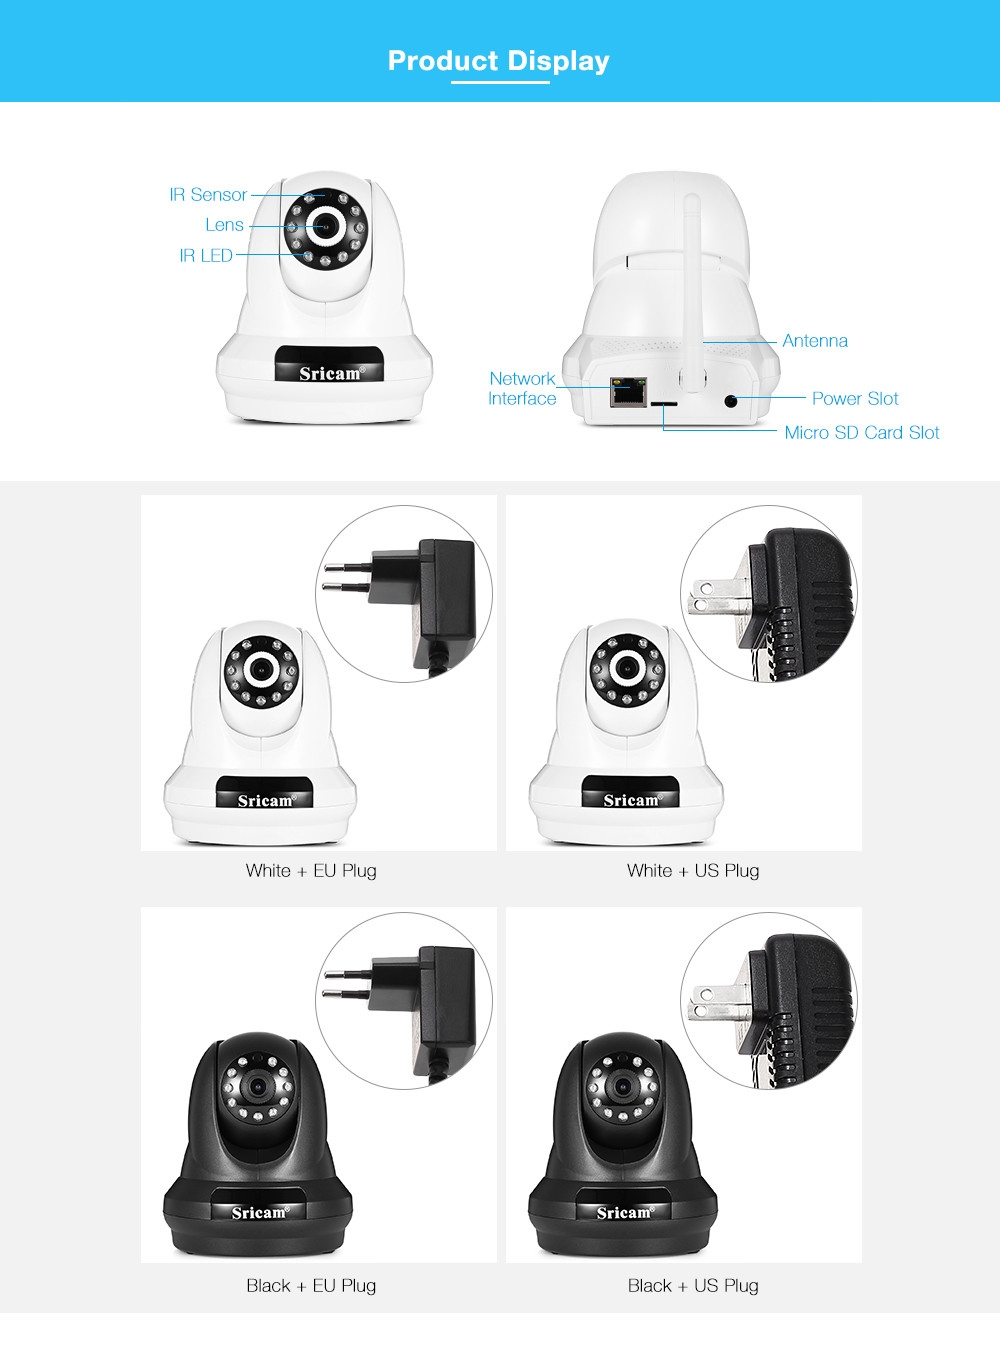 Sricam SP018 HD 1080P Wireless WiFi IP Indoor Security Camera Night Vision / P2P / Motion Detection / Pan and Tilt